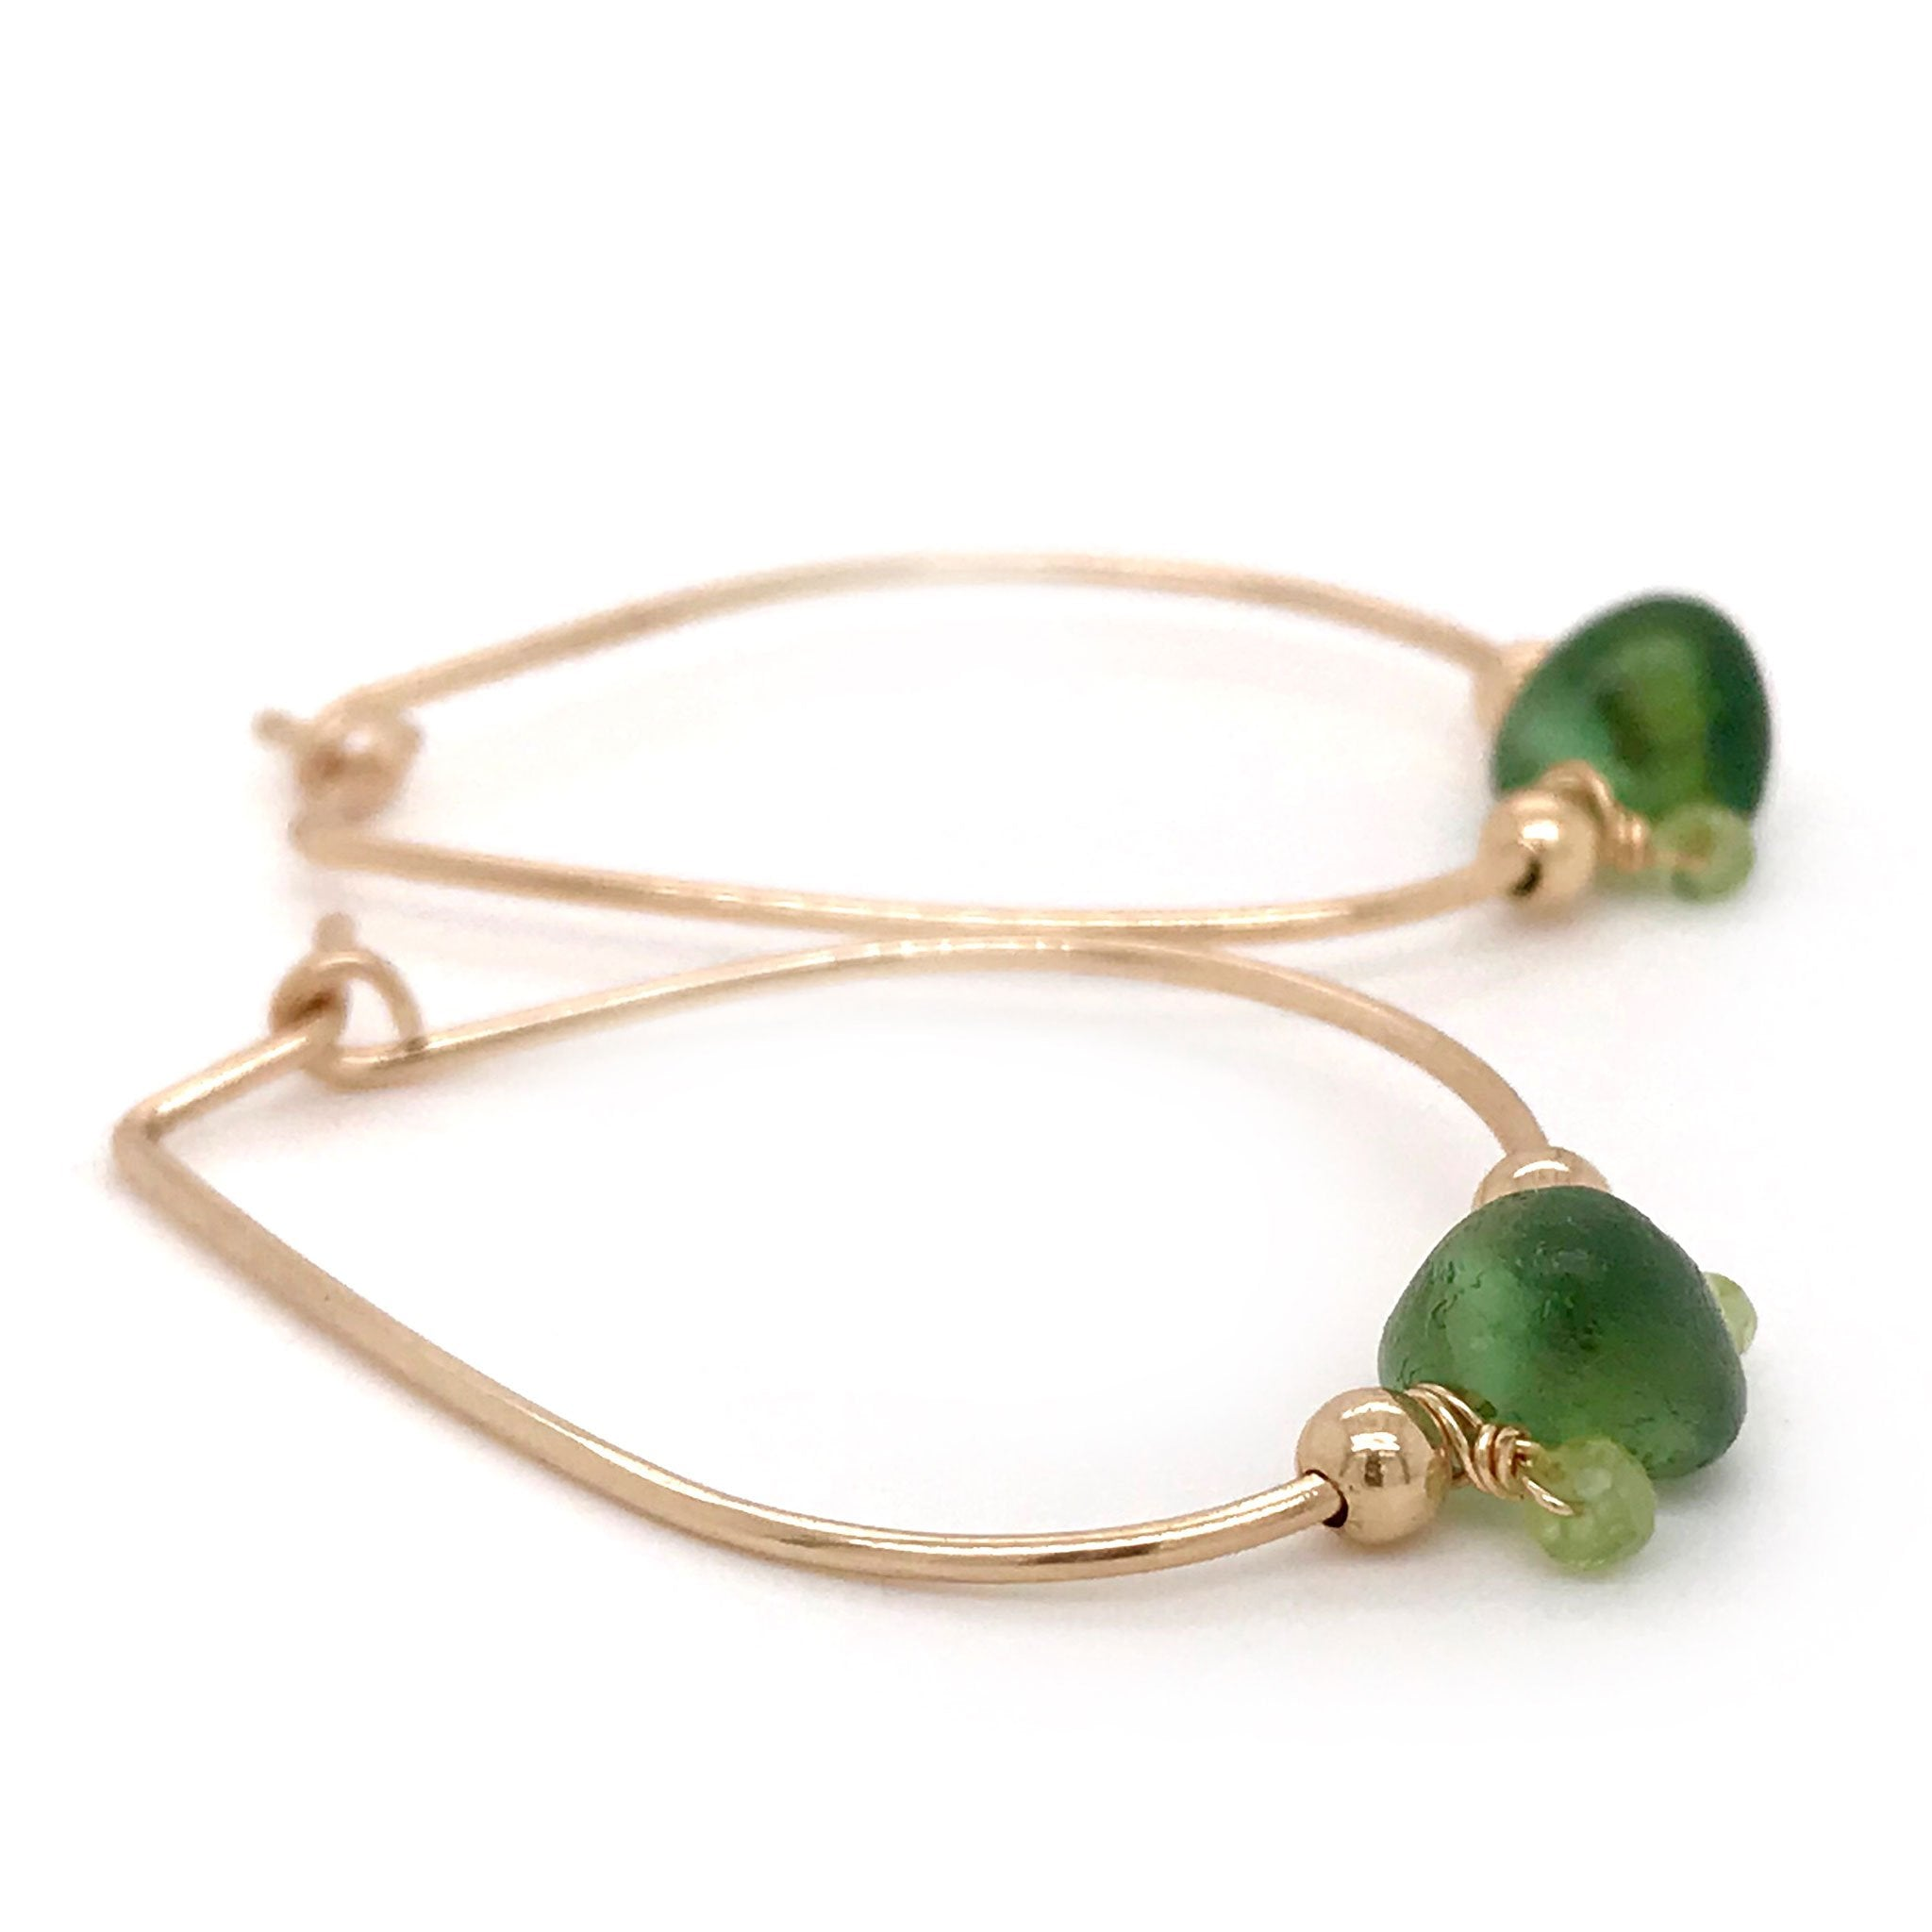 dark green seaglass earrings gold hoops with peridot stones Kriket Broadhurst jewellery